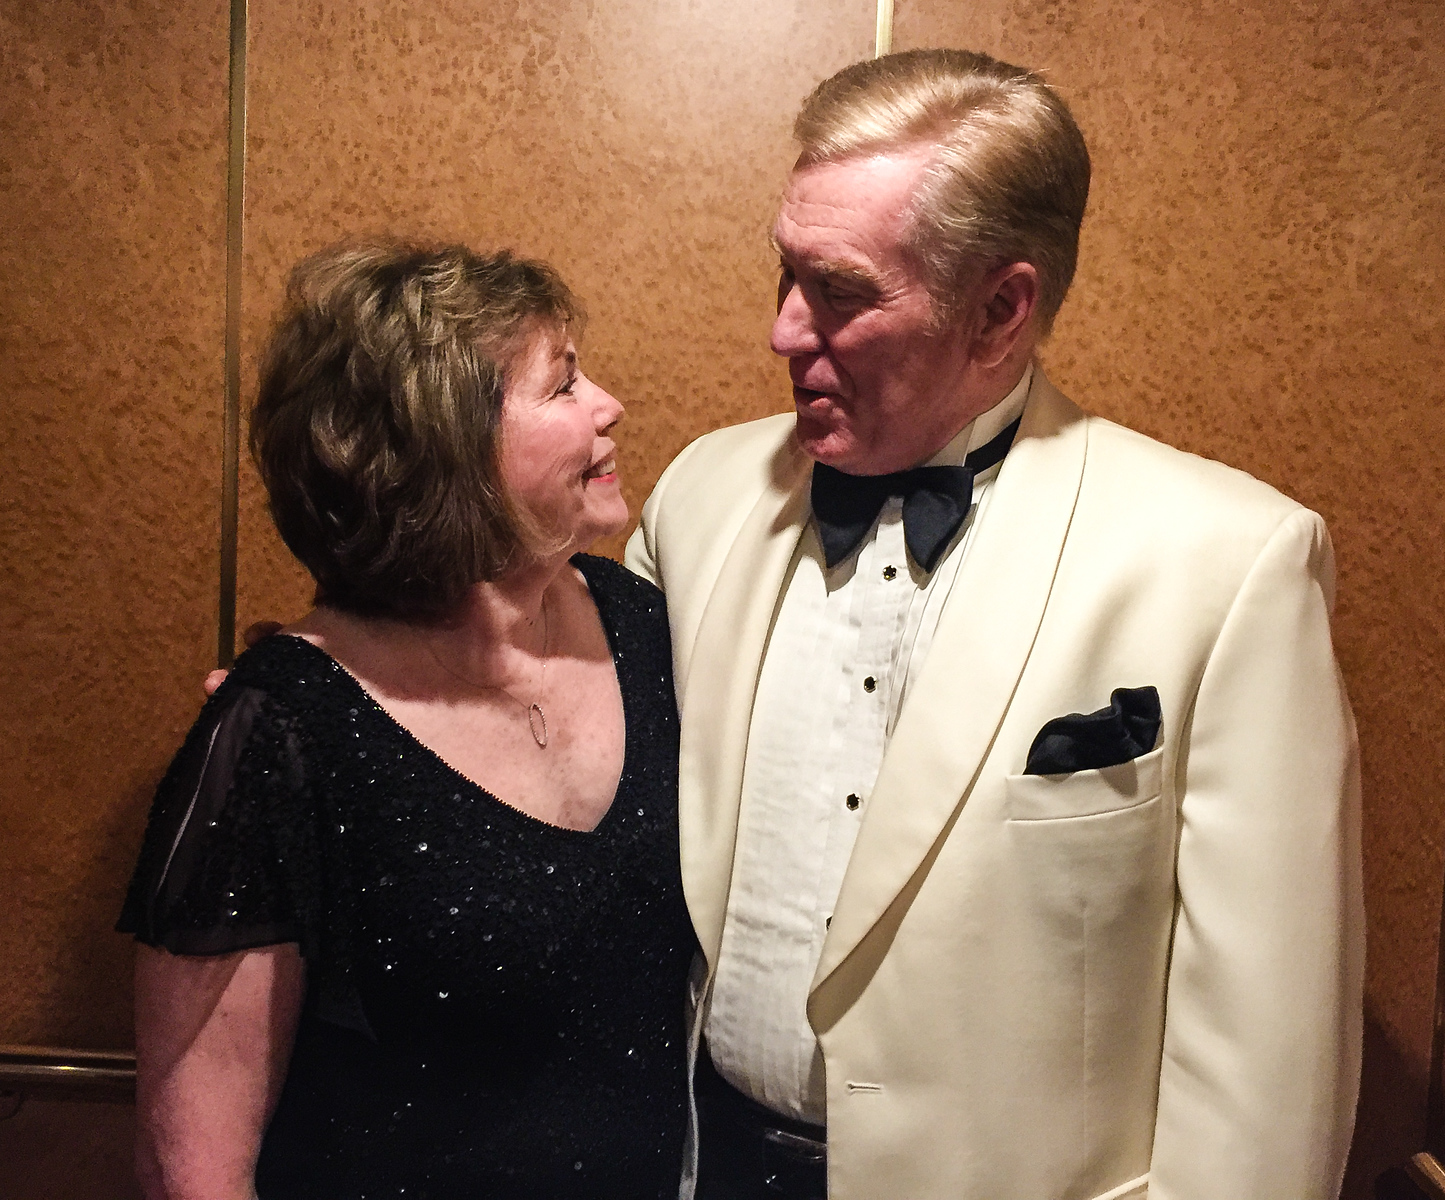 Boomer woman and man in formal clothes, reconnecting on a cruise.